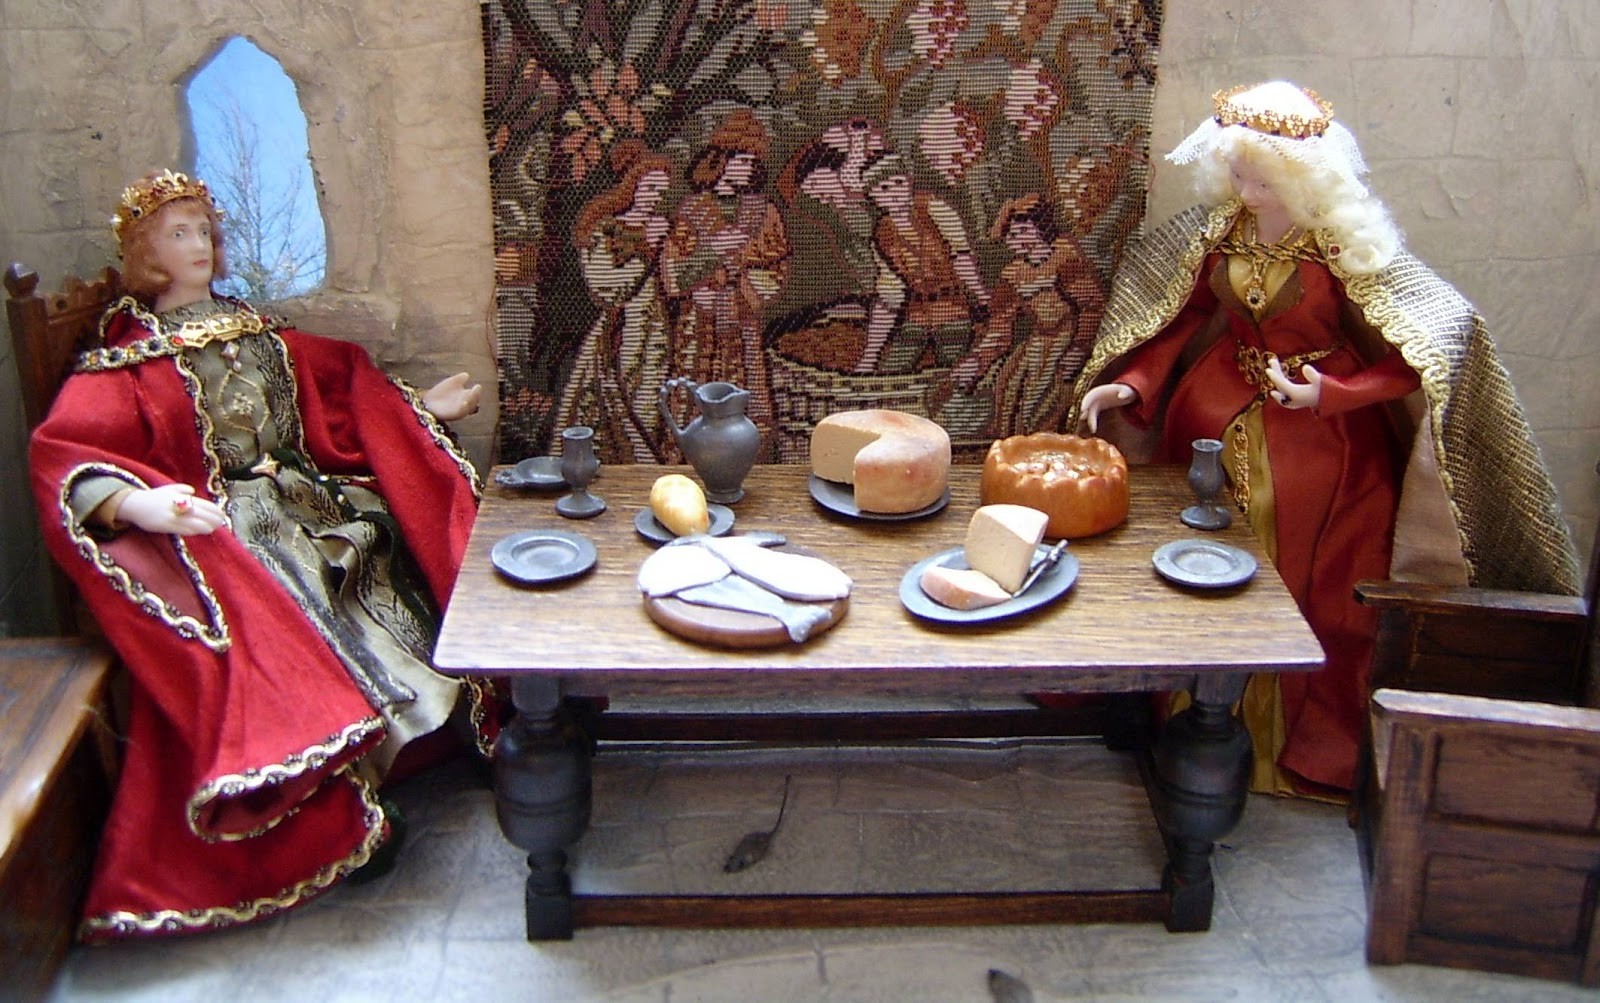 HENRY III & ELEANOR AT TABLE IN SCENE.jpg